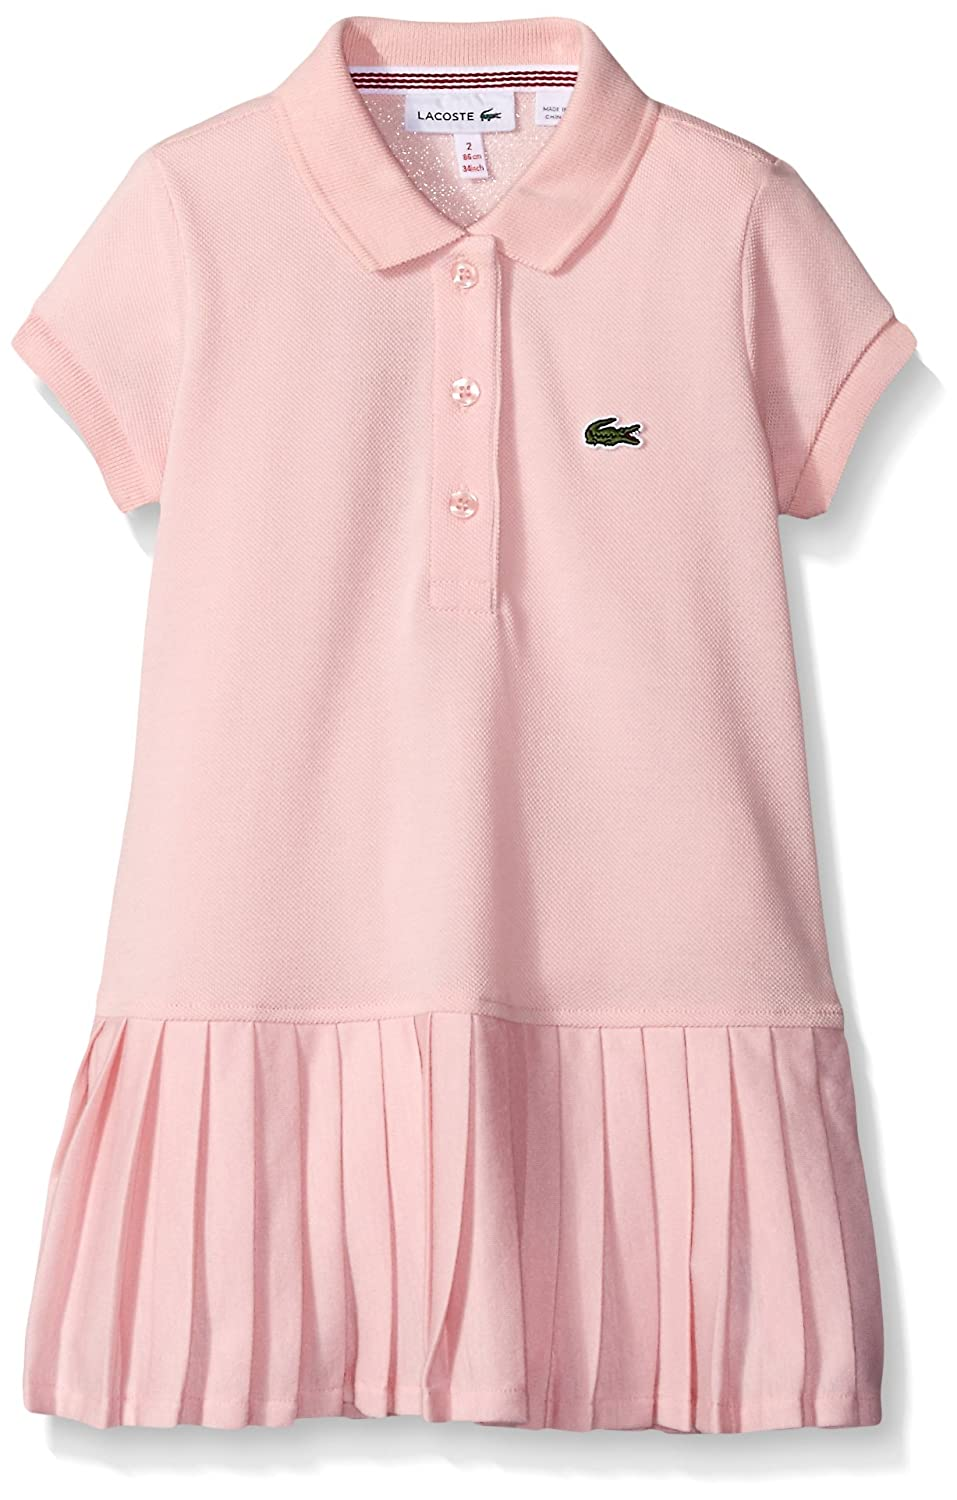 4eac9bc4039f Lacoste Girls  Big Girls  Short Sleeve Pique Polo Dress with Pleated Bottom